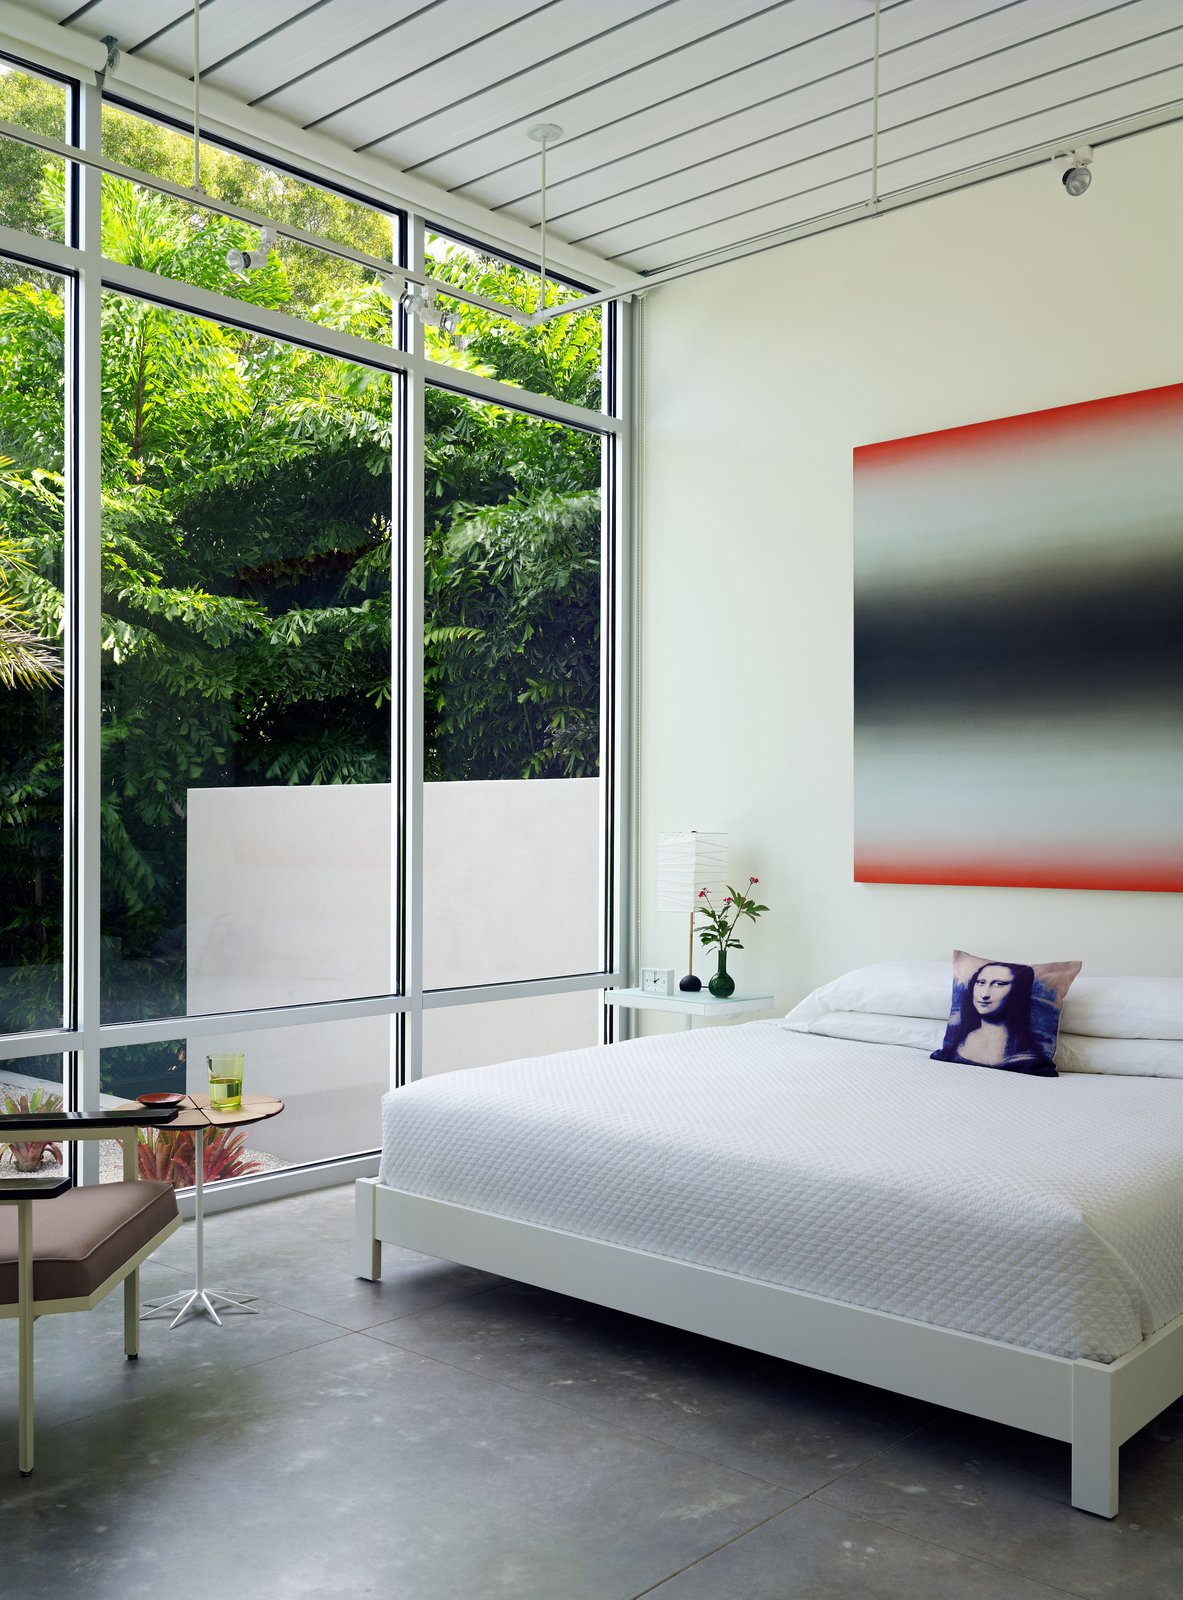 In the master suite, a painting by Eric Freeman hangs over a West Elm bed. Tagged: Bedroom, Bed, Chair, Night Stands, Track Lighting, and Concrete Floor.  Bedrooms by Dwell from This Sparkling New Home Is a Perfect Remake of Classic Sarasota School Modernism